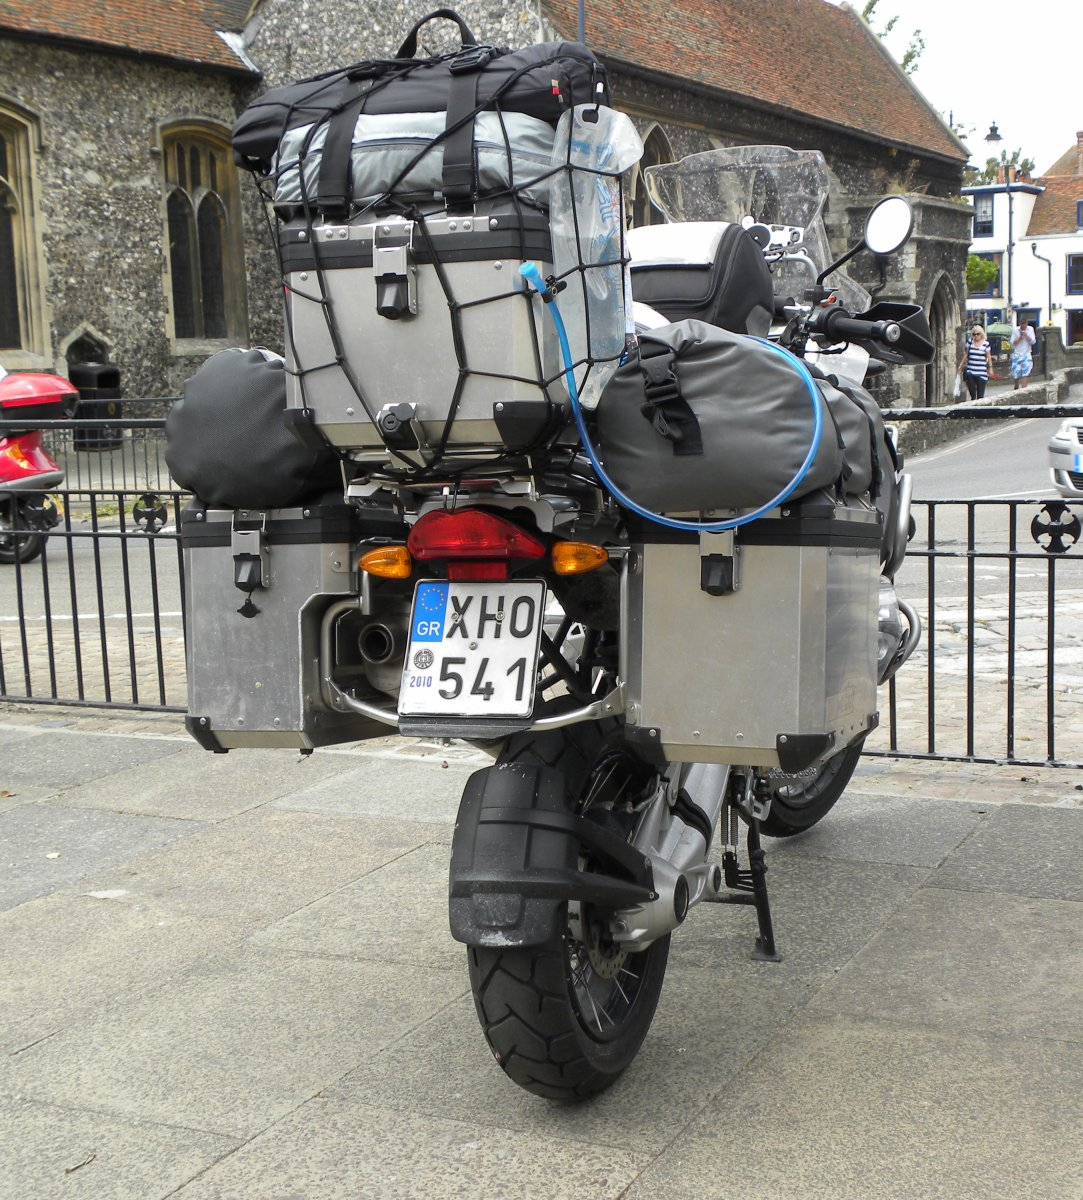 Delightful BMW_R1200GS_fully_kitted